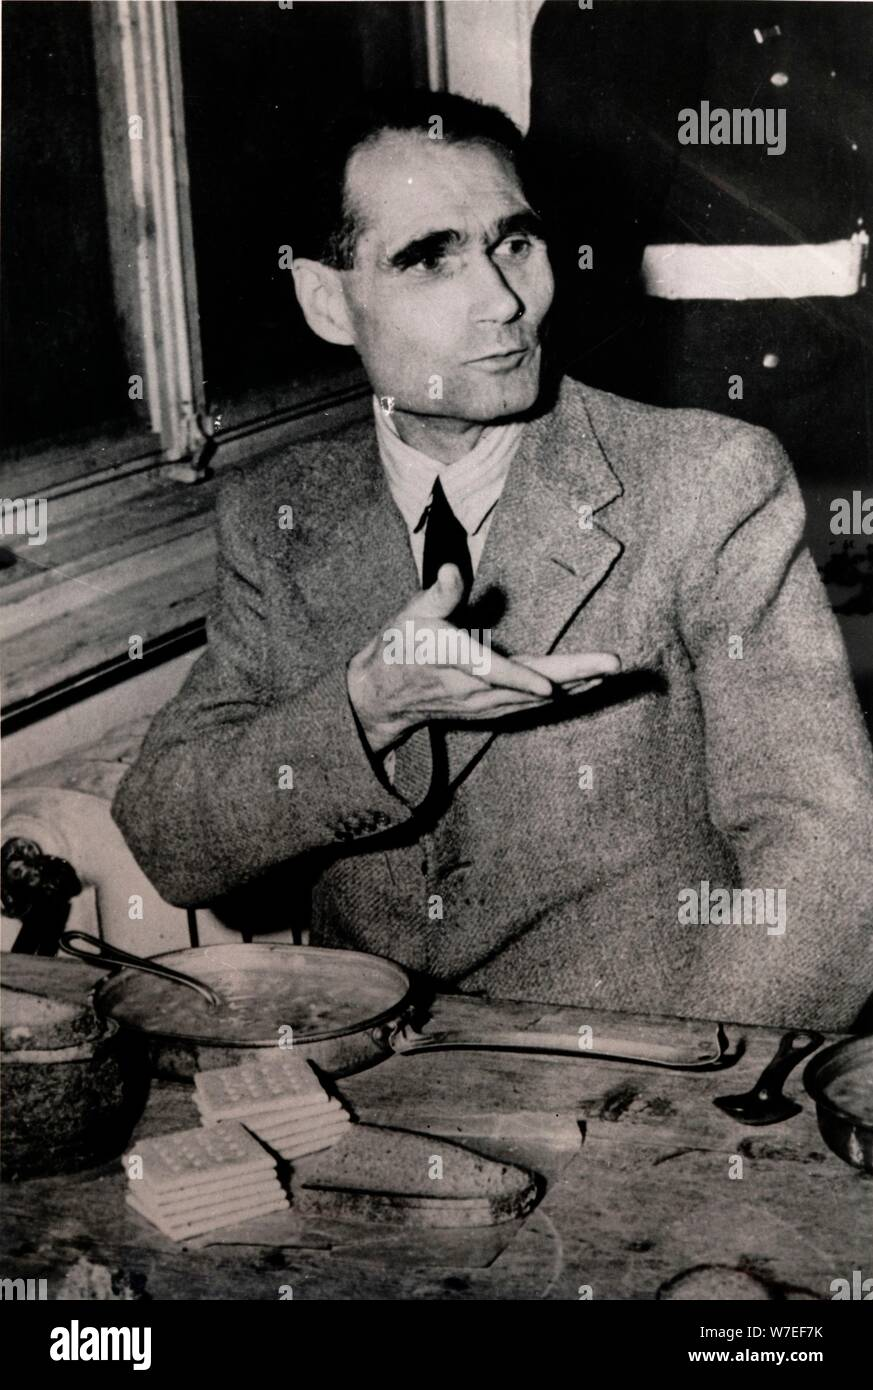 Nazi Deputy Leader Rudolf Hess at the Nuremberg War Crimes Trials, Germany, 1945. Artist: Unknown Stock Photo